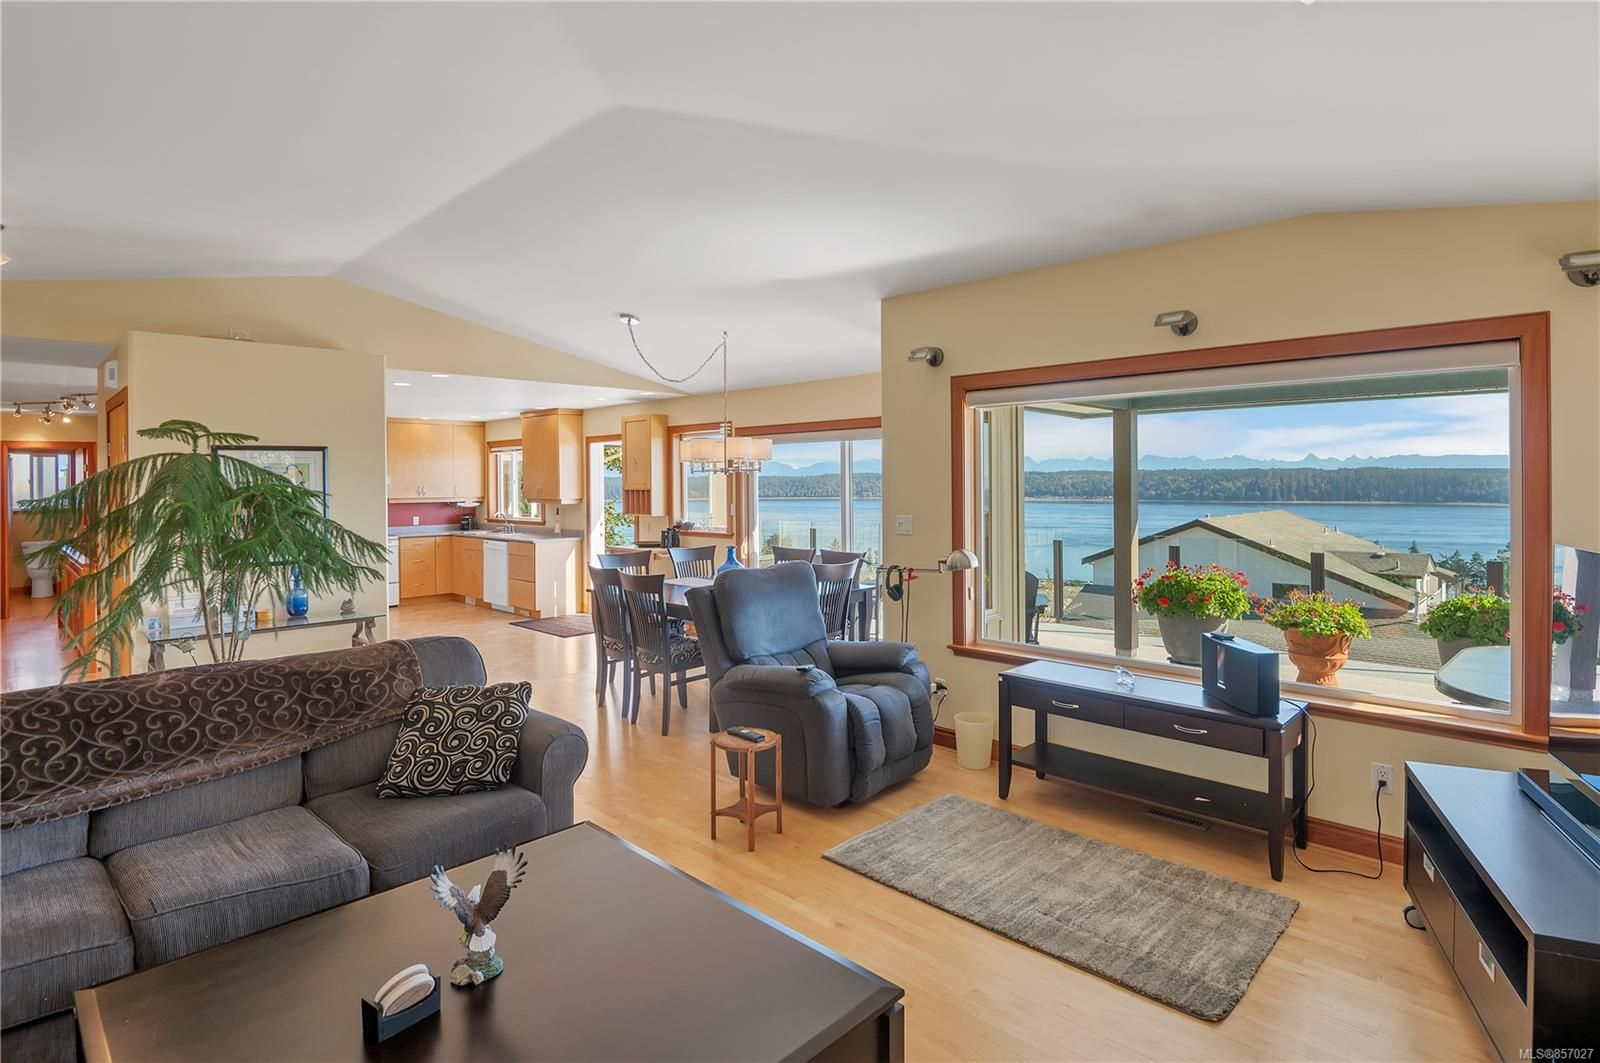 Photo 12: Photos: 253 S Alder St in : CR Campbell River South House for sale (Campbell River)  : MLS®# 857027